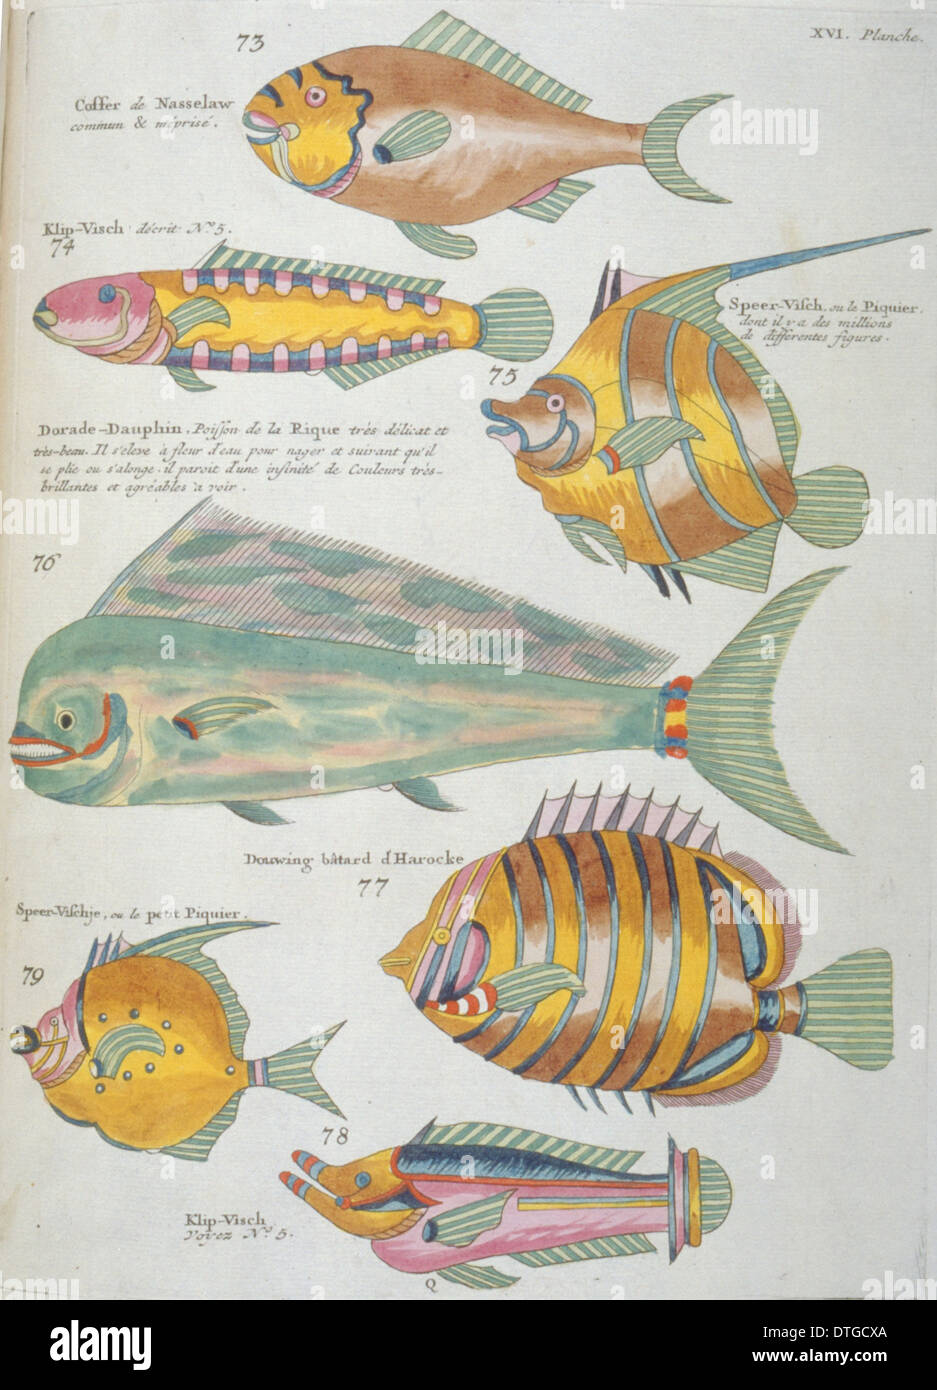 Colourful illustration of seven fish - Stock Image